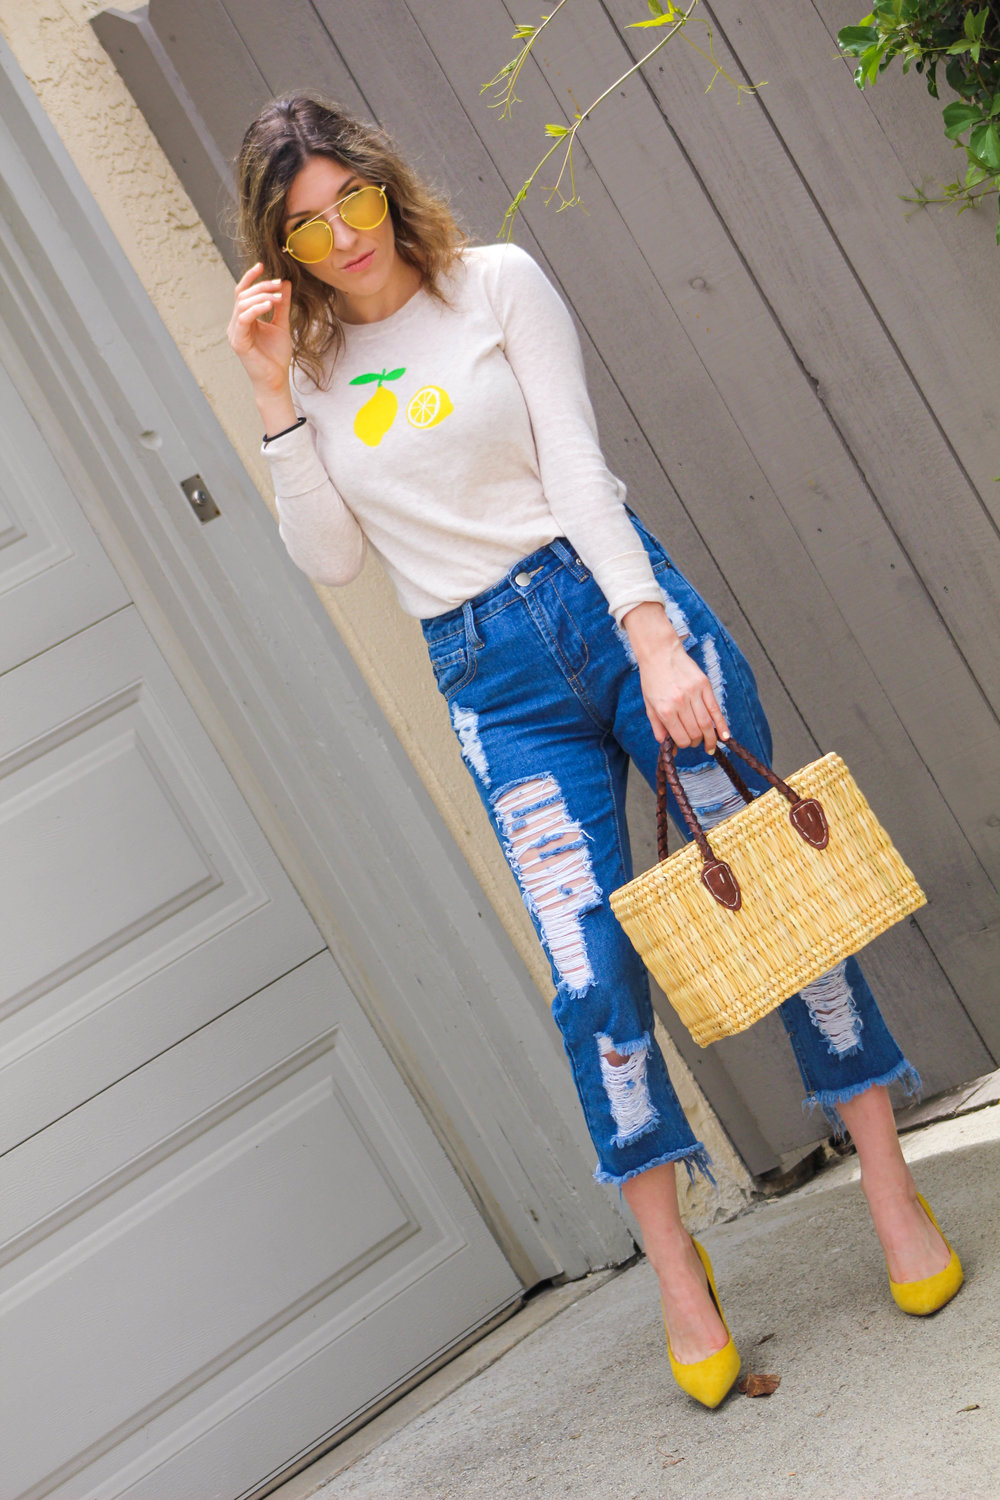 TOP : J.Crew,   similar here   //  JEANS:  F21   //  HEELS : BR,   similar here   //  BAG : Global Goods Partners,   similar here   //  SUNNIES :   F21         Yellow is a color that has become extremely popular this past year. I say it's the color of 2017! Because of its vibrancy, I find myself gravitating to more and more yellow pieces. Retailers are slowly producing more and more items in different shades of yellow so there is no shortage when looking for a great yellow piece to integrate into your wardrobe. These heels, sunnies, and lemon on my sweater add just the right pops of color to this look. The color is not overpowering, so you can wear all this yellow in one look! I have recently bought a lot of yellow pieces and can't wait to share them with you guys in upcoming summer posts!         The lemon print is another trend that is perfect for the summer. This sweater is so darling and just screams summer to me! I love that this sweater comes in a lightweight wool so it is still cool enough to wear in the warm summer months. Next up I'll be pairing it with a pair of denim roll up shorts and trainers for a day of running errands, but it would be a perfect beach sweater to wear over a bathing suit as well. There are so many great lemon print items on the market right now. I am obsessing over    this dress    ,  this skirt , and  this bathing suit !         I am getting too thrilled for summer! All I need is for the June gloom to go away and the warm temps to rise! Beach... Here I come!        I hope you all have the best day!!!       xoxo   ~ Nicole